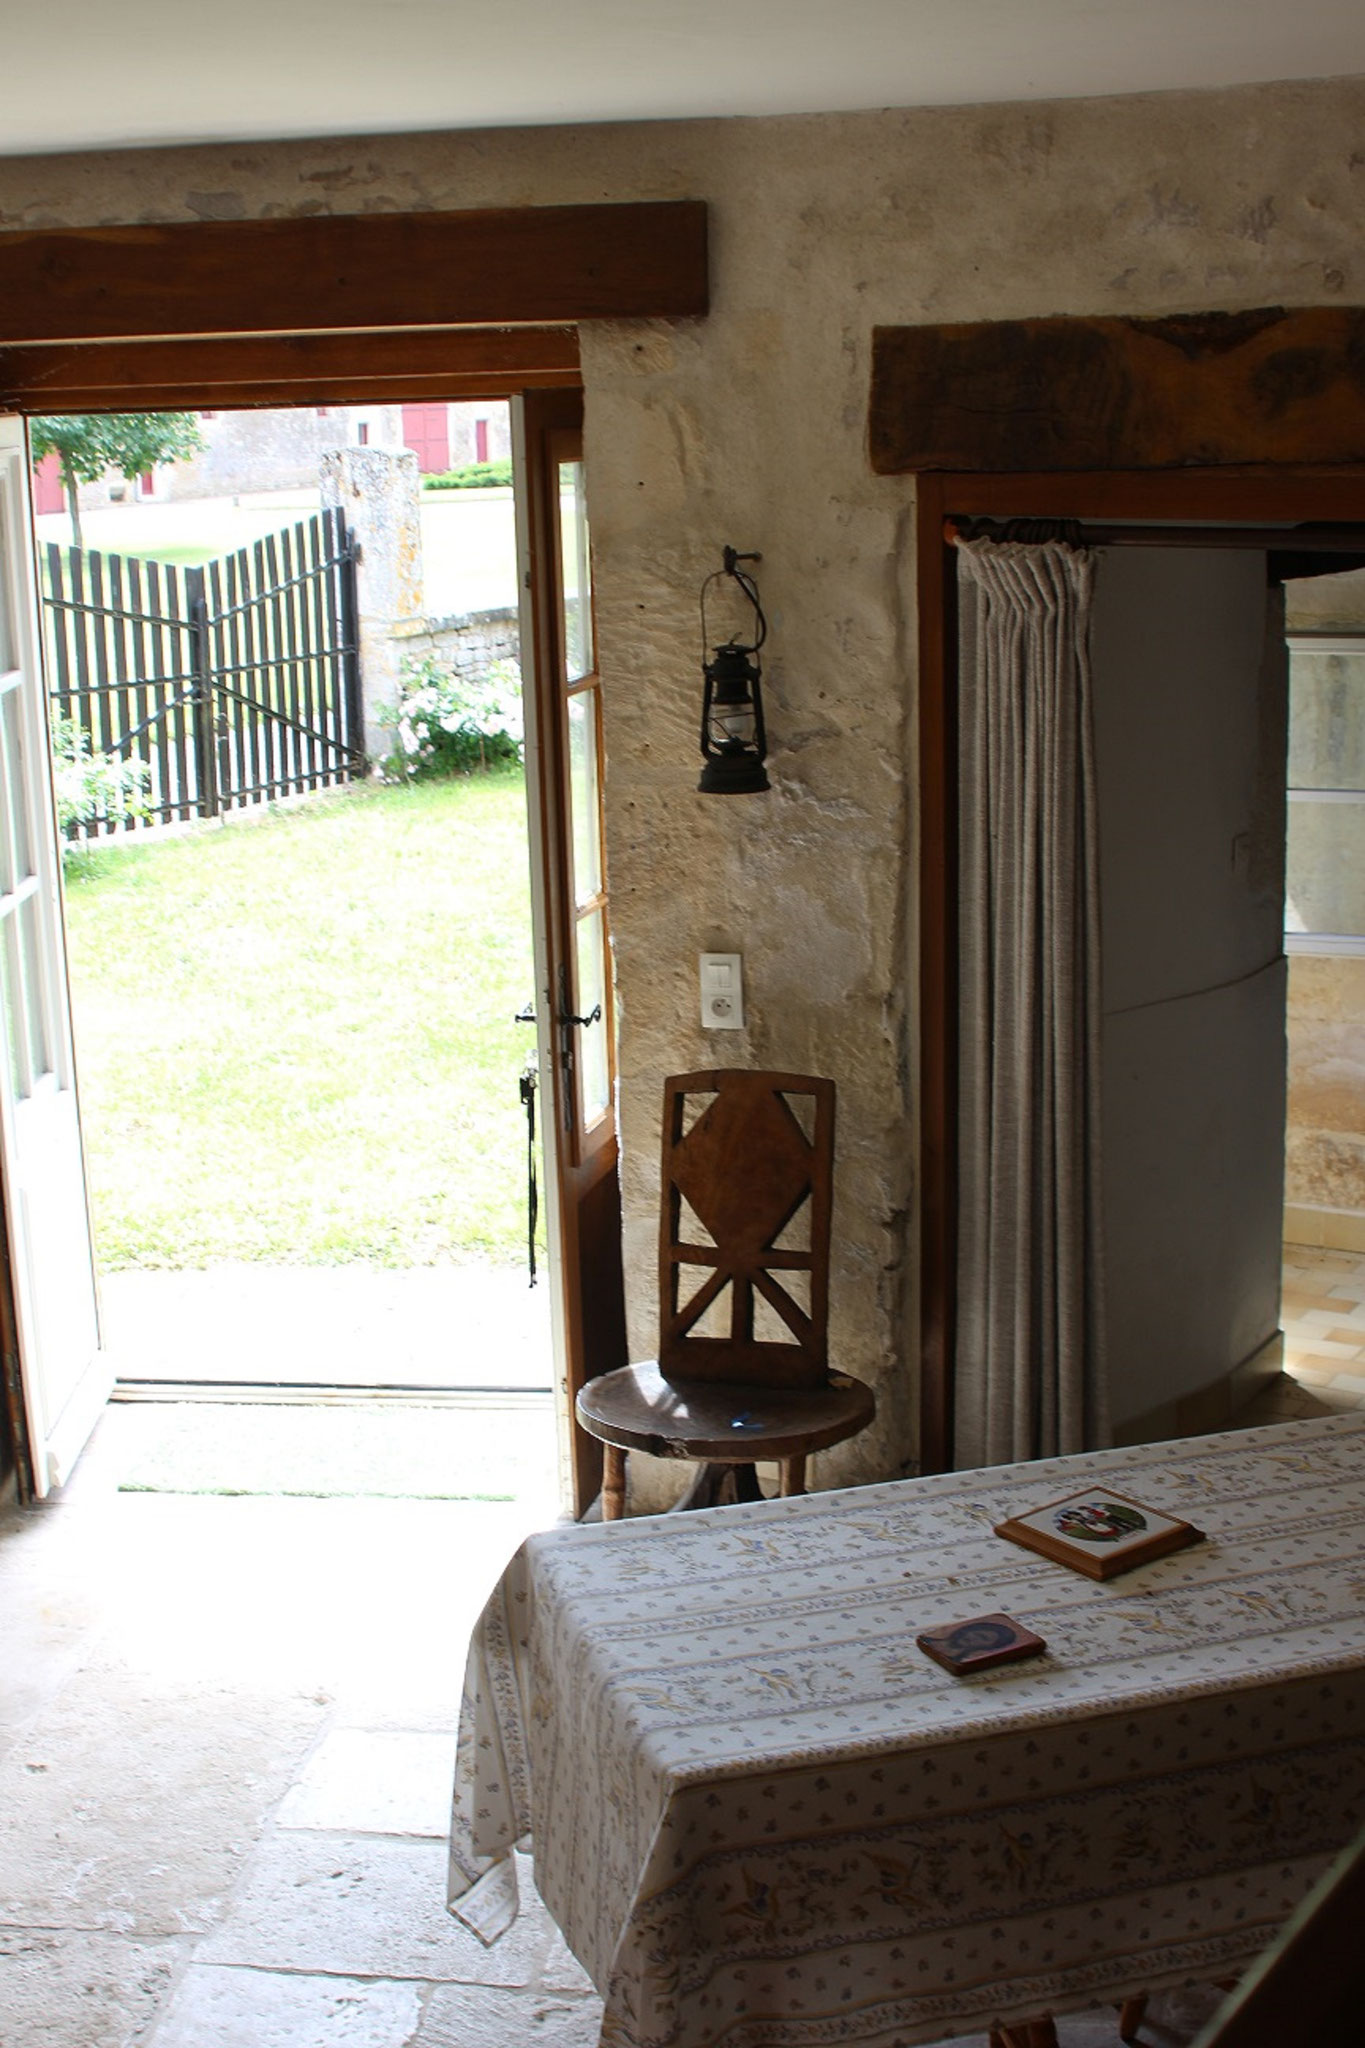 In the tower, the living room, dining area on the ground floor, overlooking the garden